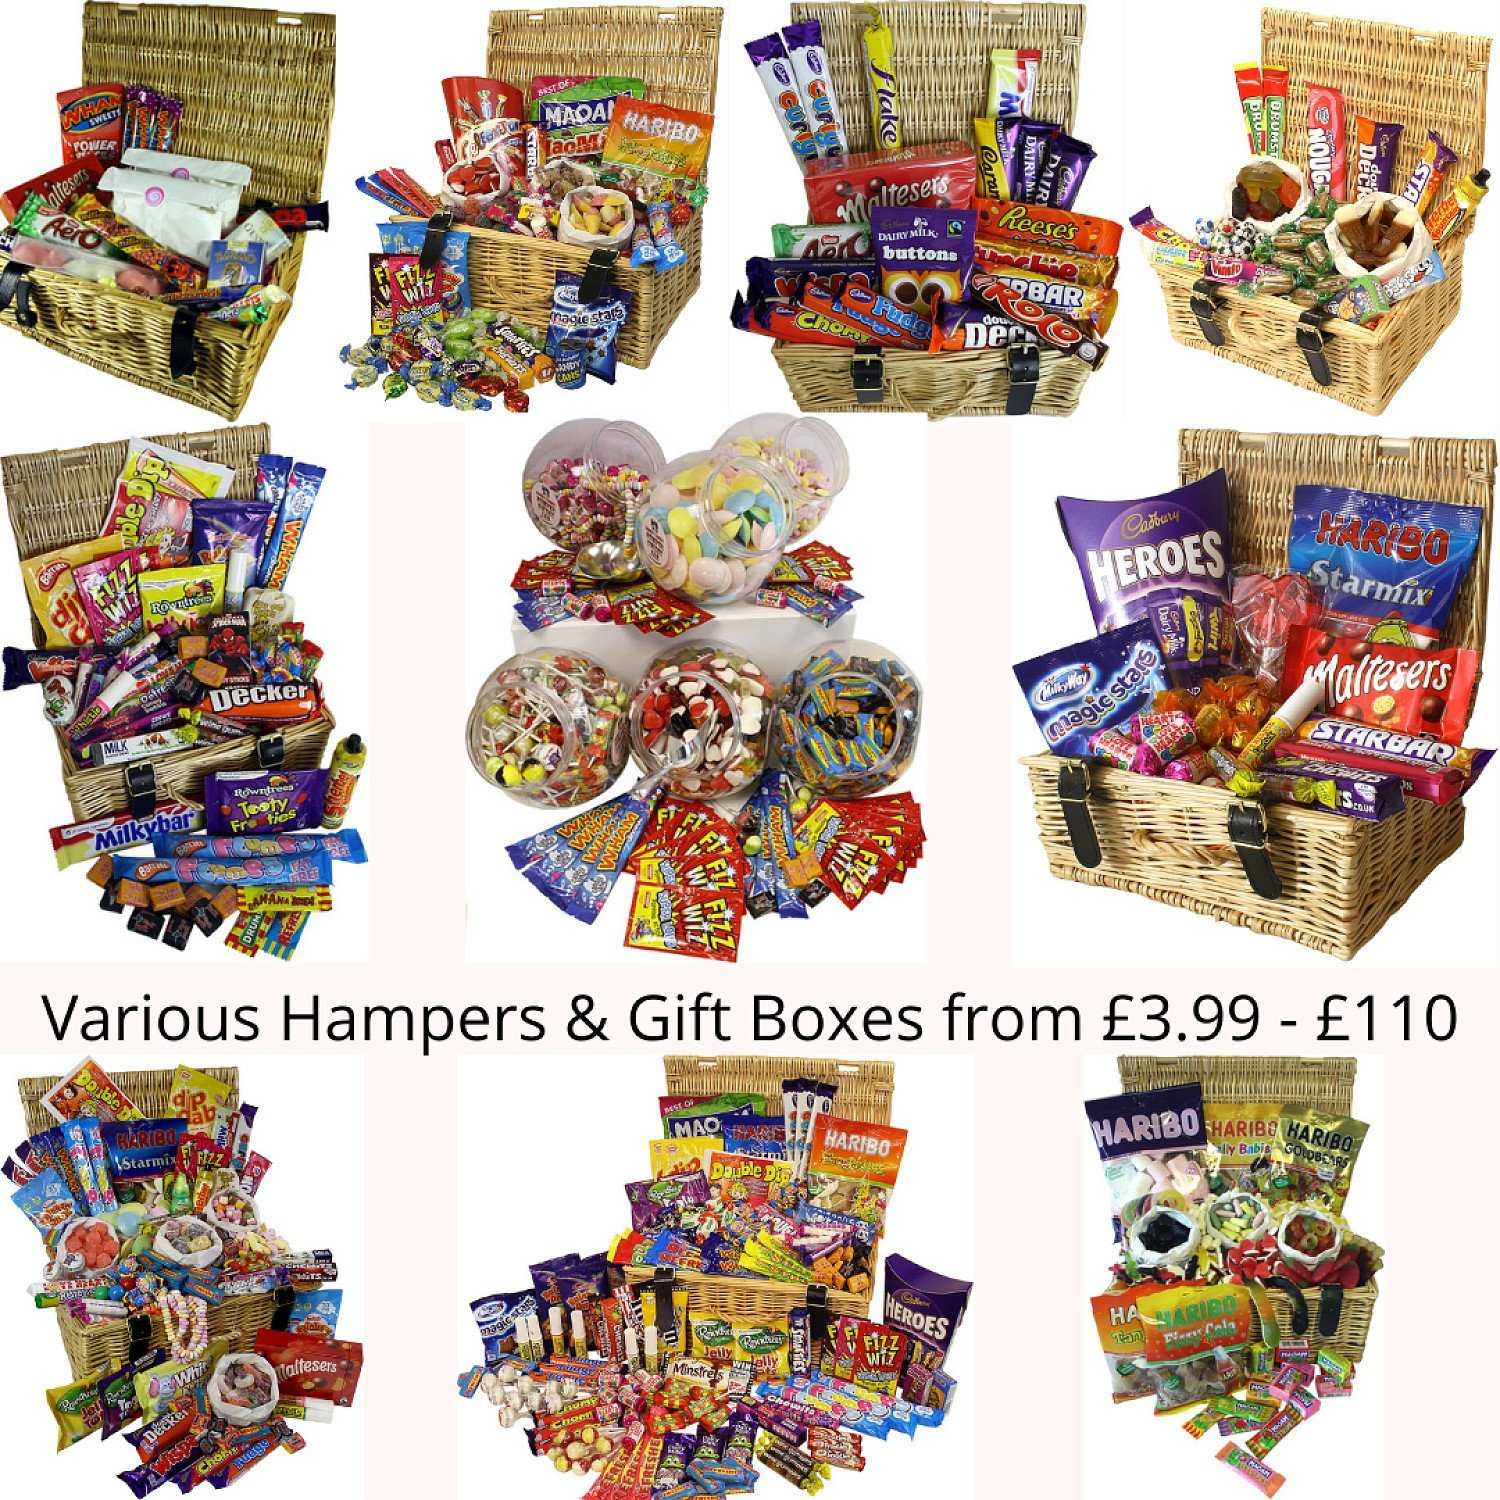 Sweet Hampers & Gift Boxes from £3.99 - £109.99